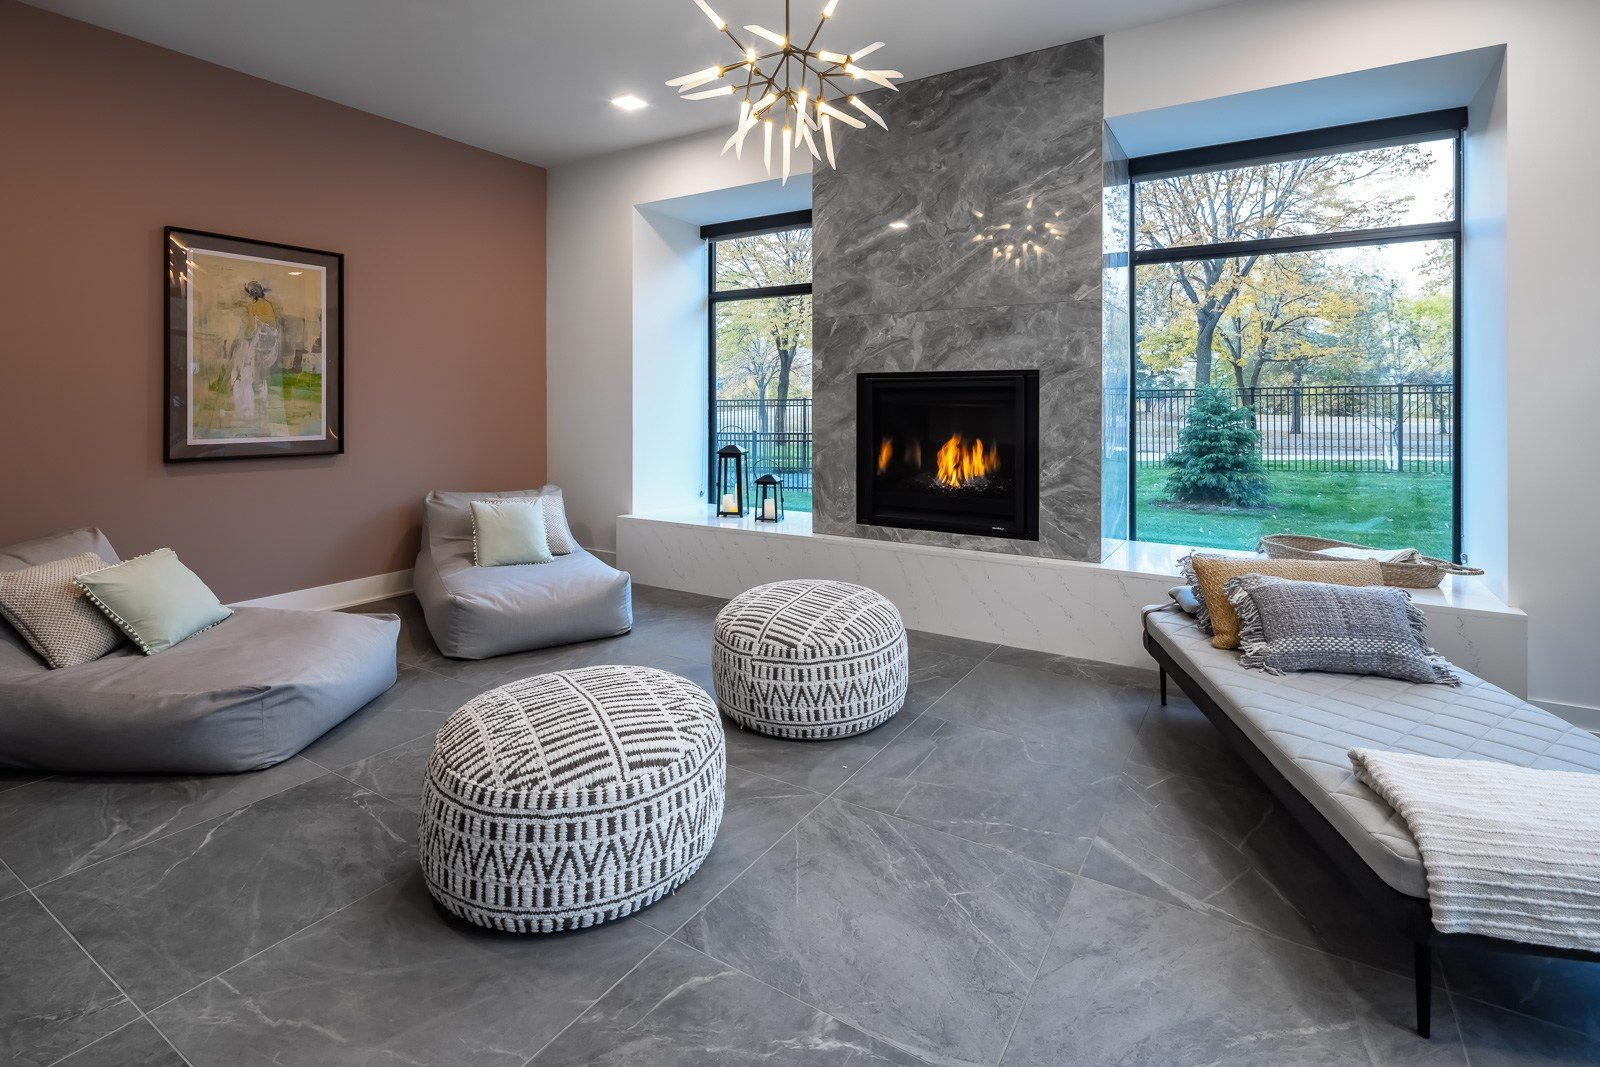 Spa lounge with relaxation space and fireplace